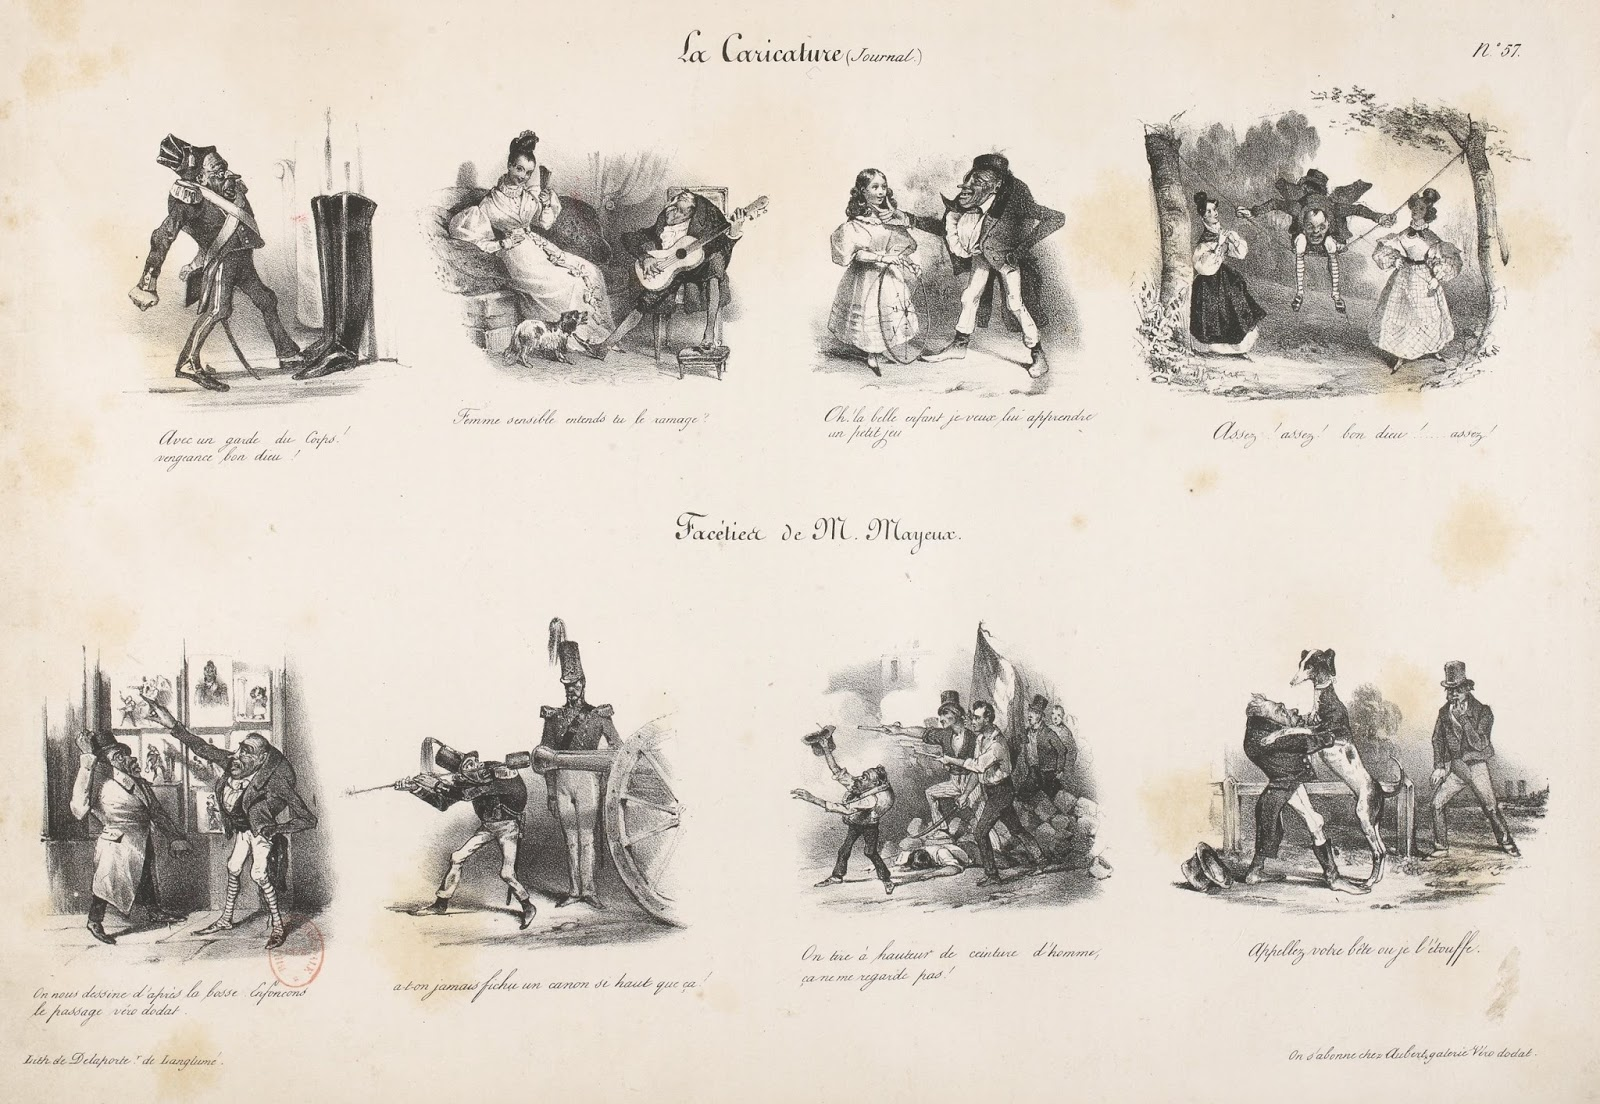 Suites d'illustrations narratives par Jules David dans La Caricature, en 1831.